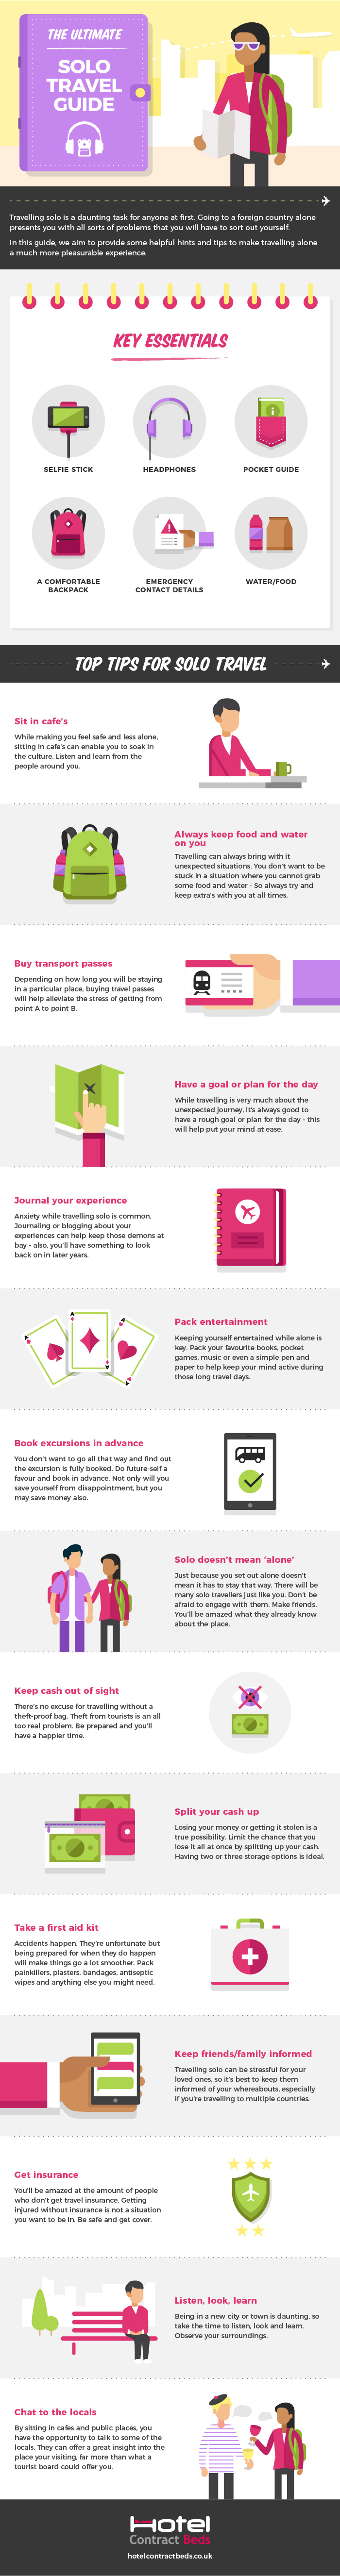 How to Plan the Best Solo Holiday - Infographic